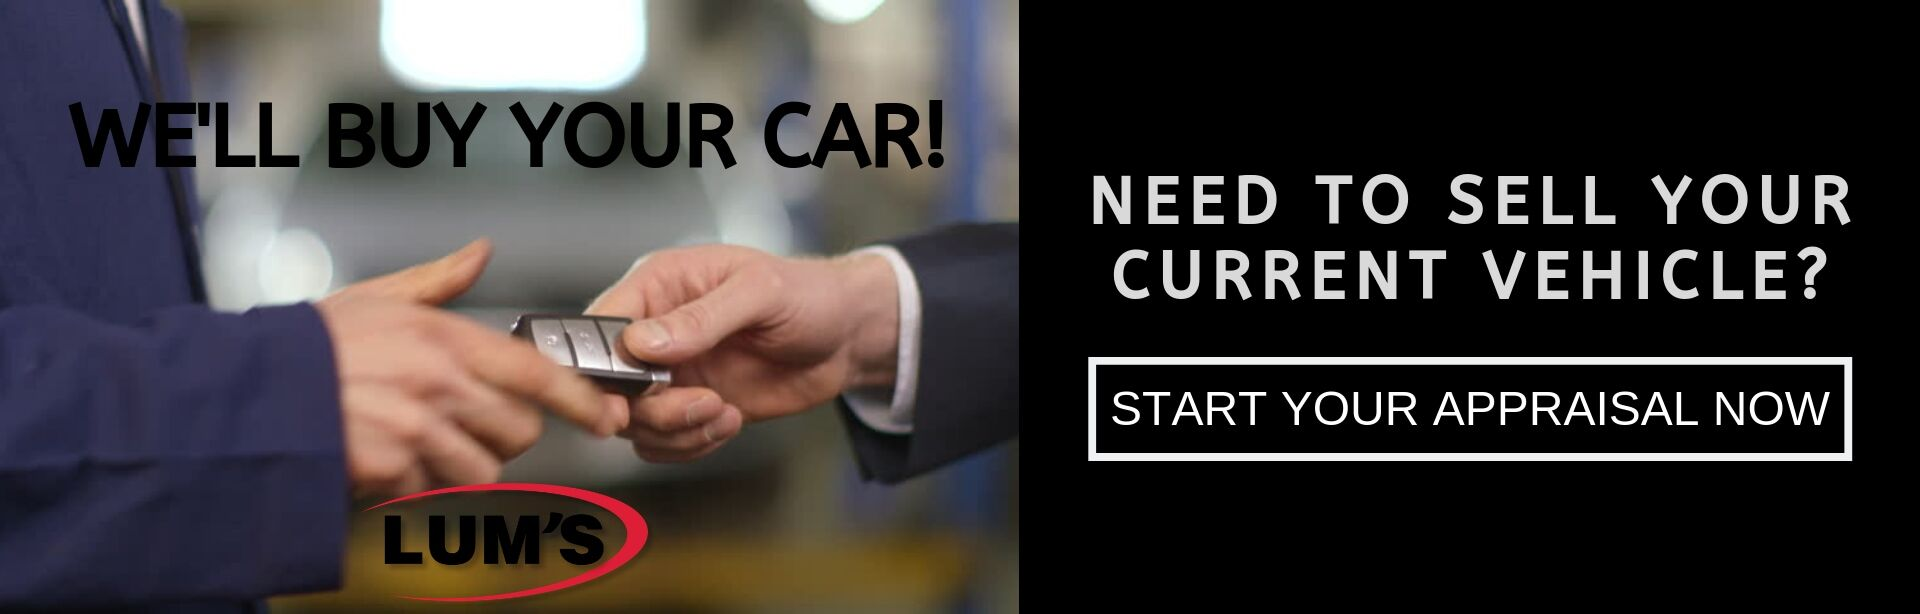 Sell Your Current Vehicle